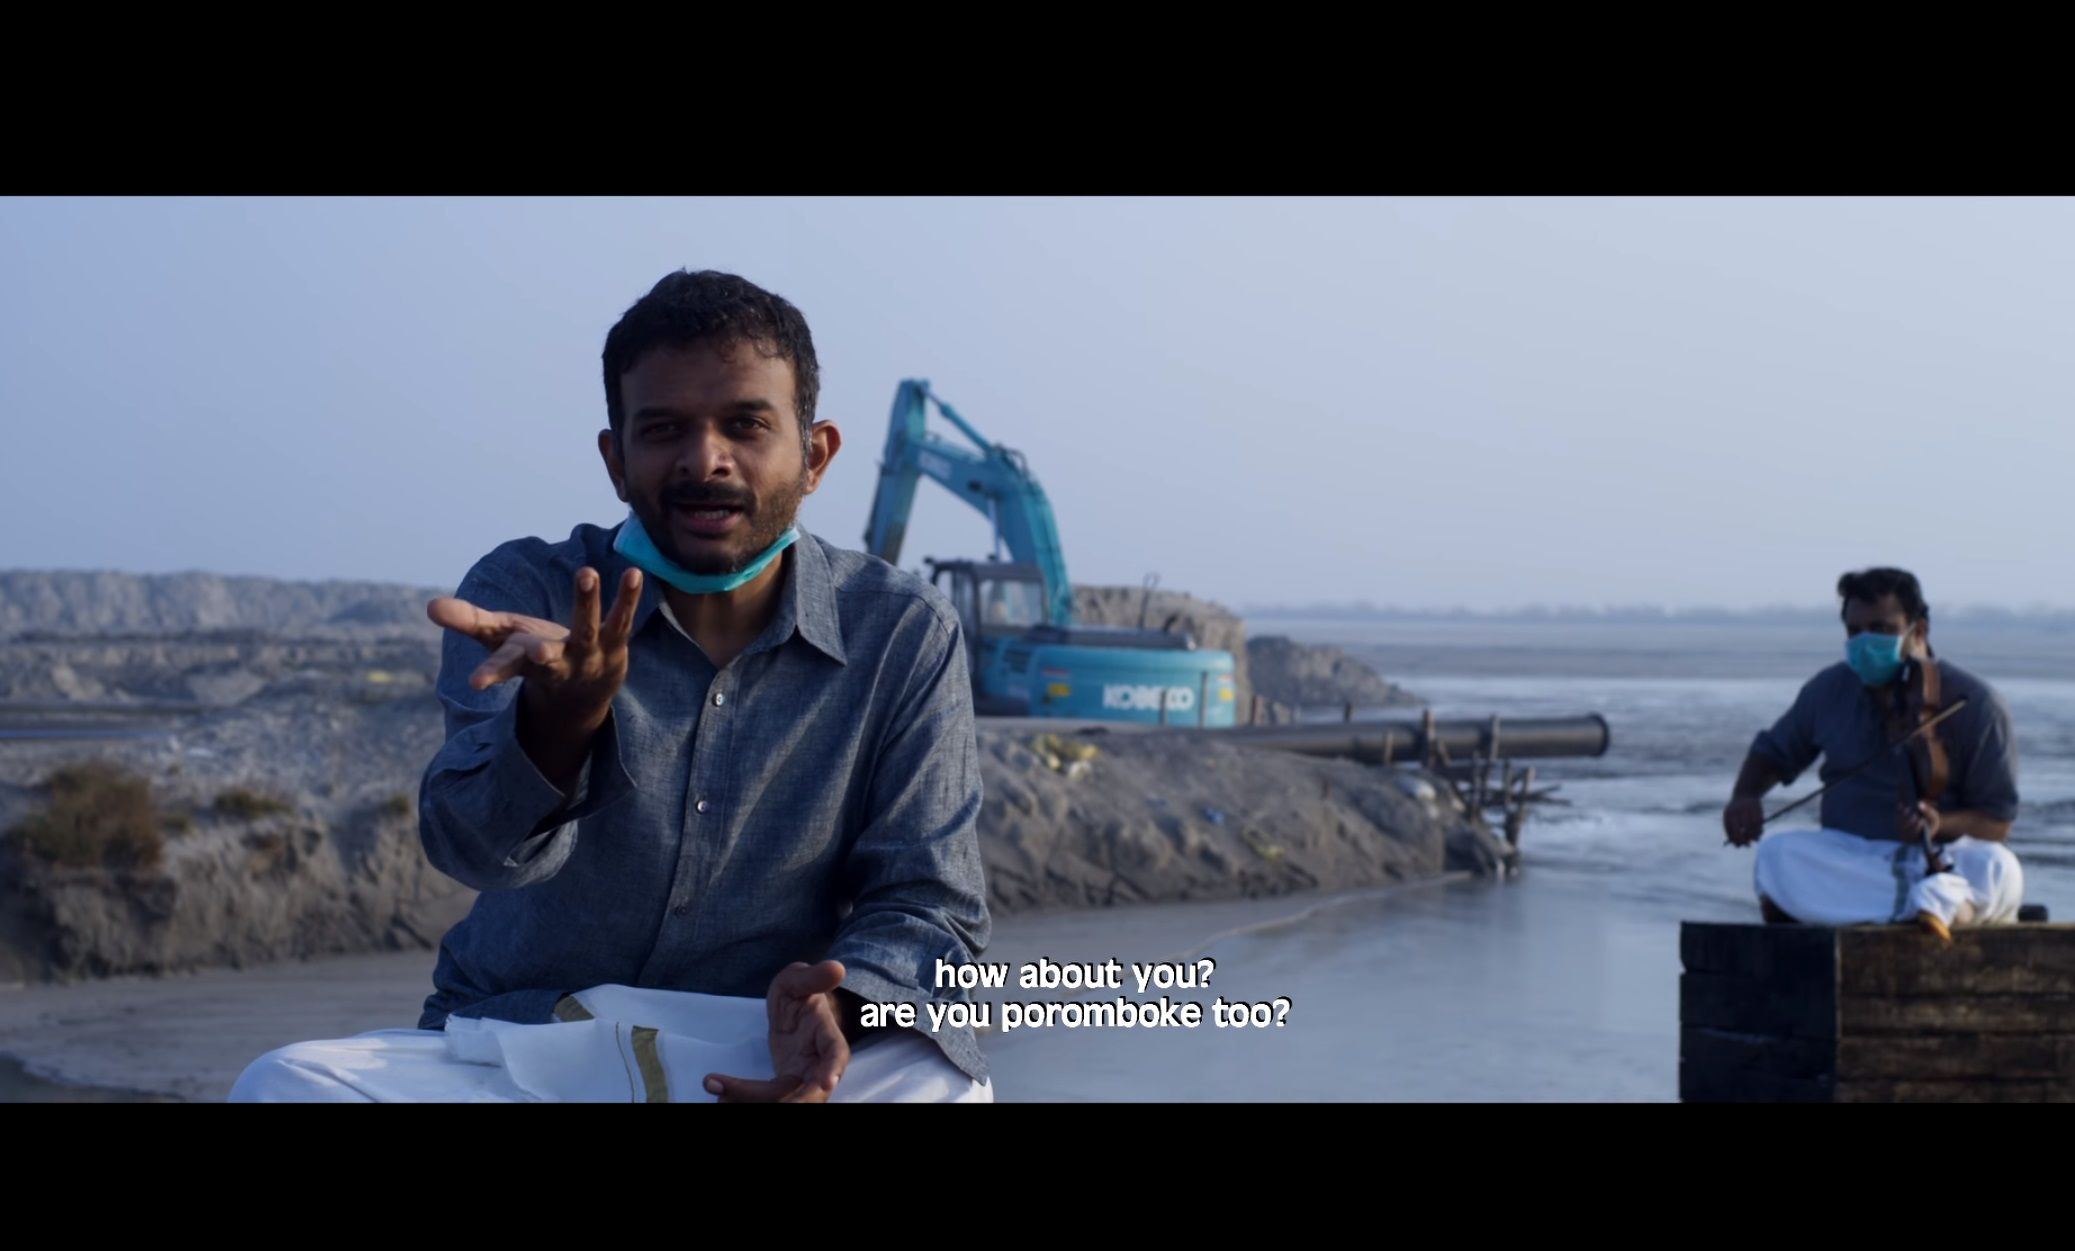 ii/ What about you? A still from the Chennai Poromboke Paadal